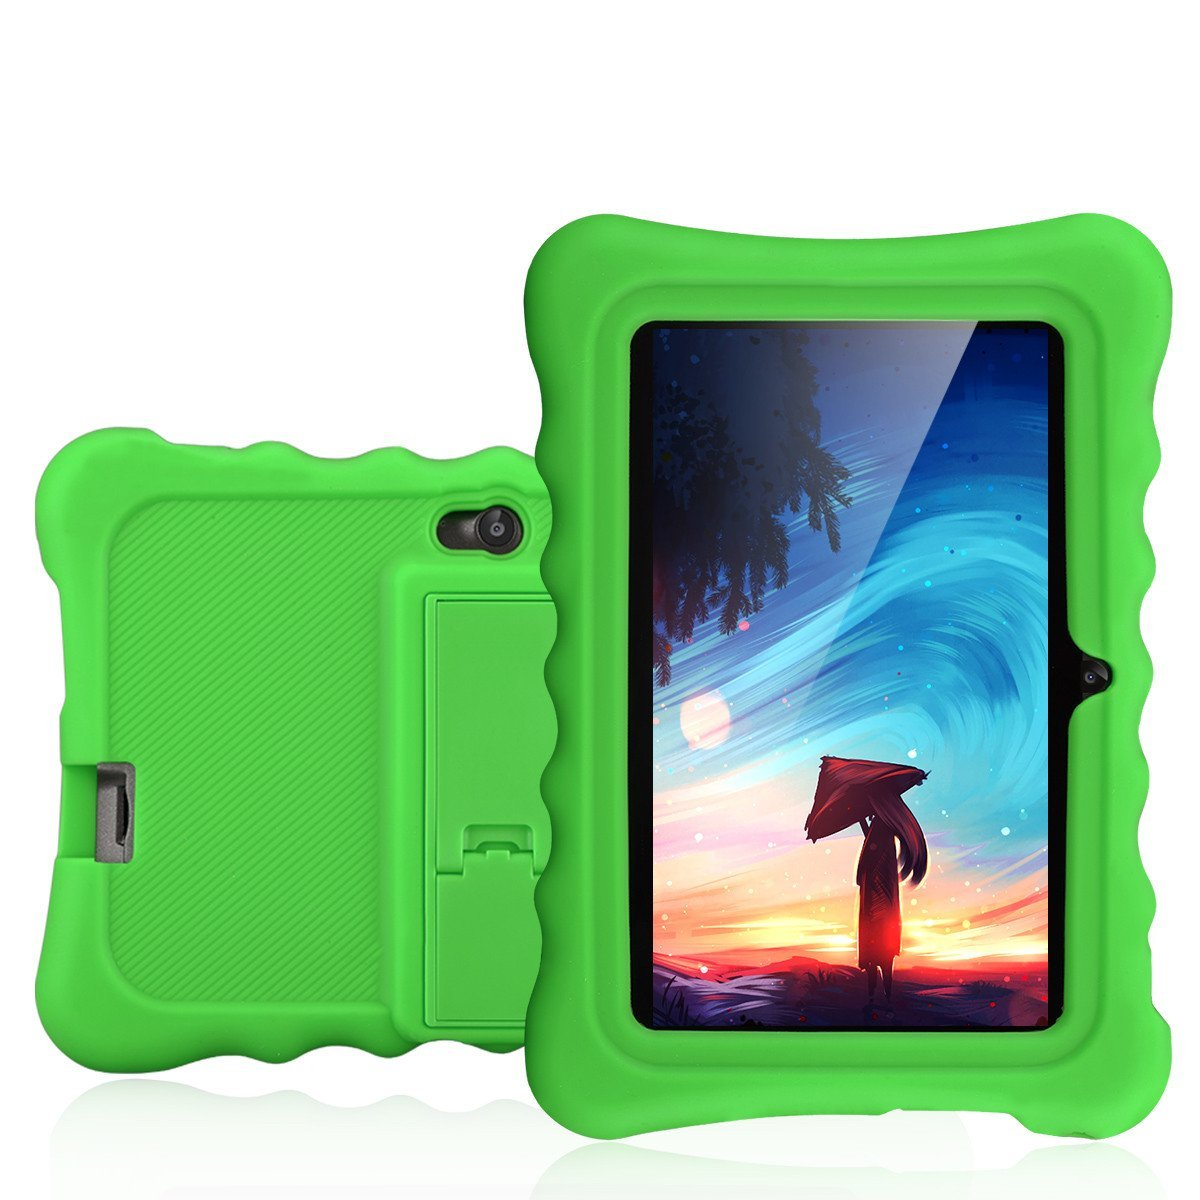 Ainol Q88 7 inch Eye-Protection Tablet with Adult Mode and Child Mode Android 8GB Education Tablet Gifts for Kids Sicicone Case Dual Camera WiFi External 3G by AINOL (Image #2)